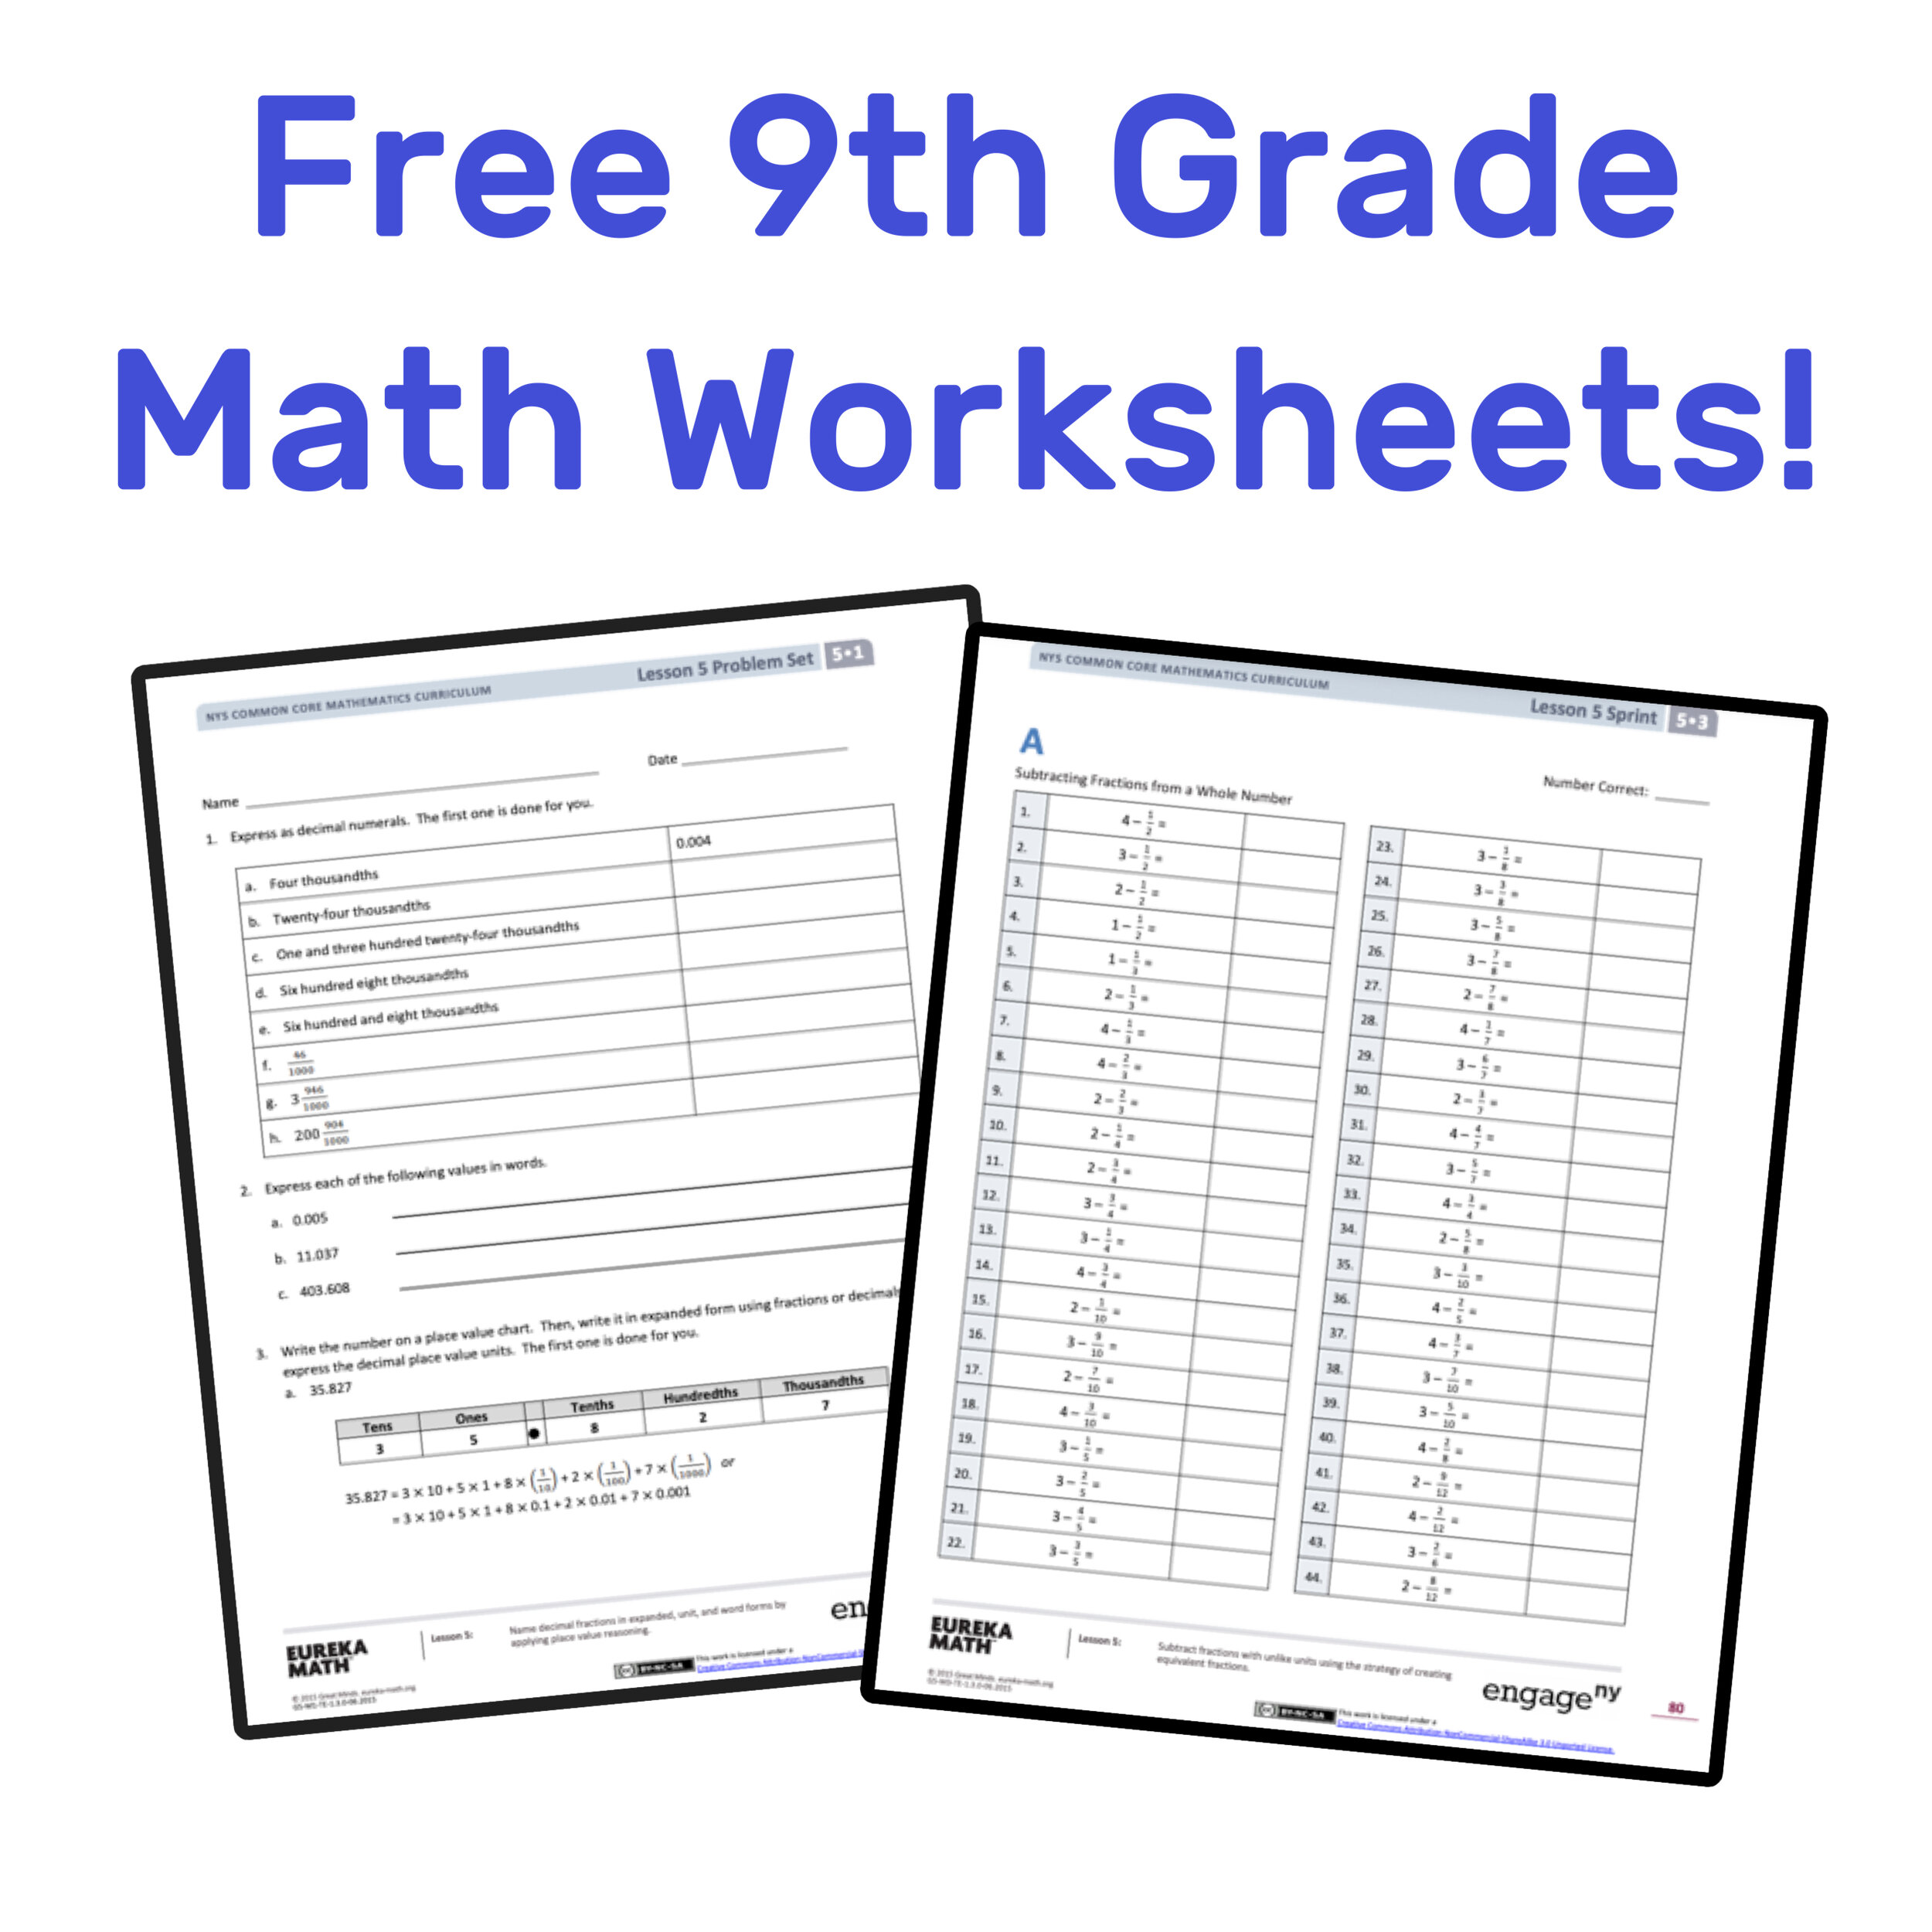 The Best Free 9th Grade Math Resources Complete List Mashup Math